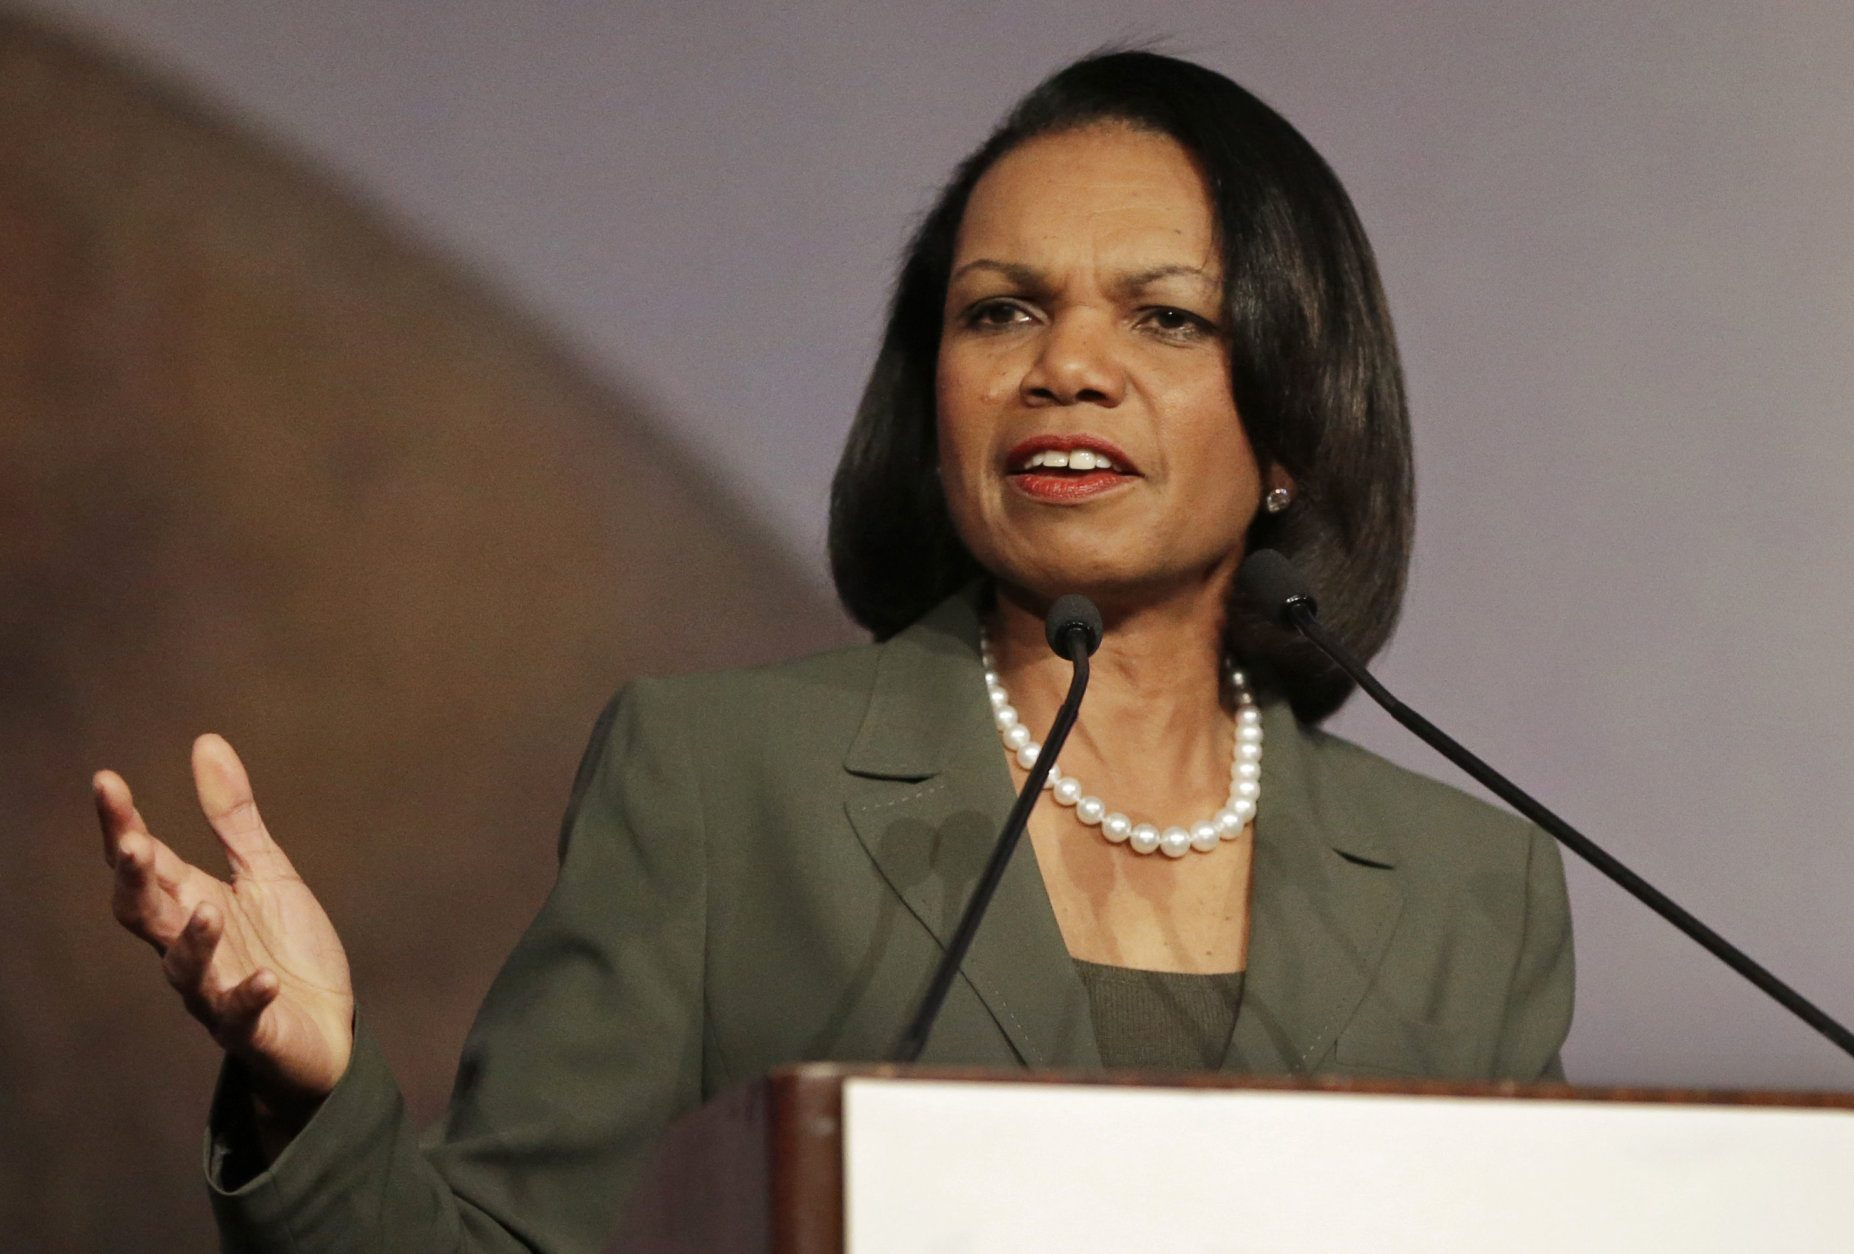 FILE - In this March 15, 2014 file photo, former Secretary of State Condoleezza Rice gestures while speaking at the California Republican Party 2014 Spring Convention in Burlingame, Calif.  University of Minnesota faculty and student activists are pressuring the school to rescind its invitation to Rice to speak at the Twin Cities campus April 17 as part of the Humphrey School of Public Affairs' lecture series. Math professor William Messing has introduced a resolution to be considered by the University Senate next week which asks that the Rice speech be canceled because of her role in the wartime policies of the Bush administration.(AP Photo/Ben Margot, File)